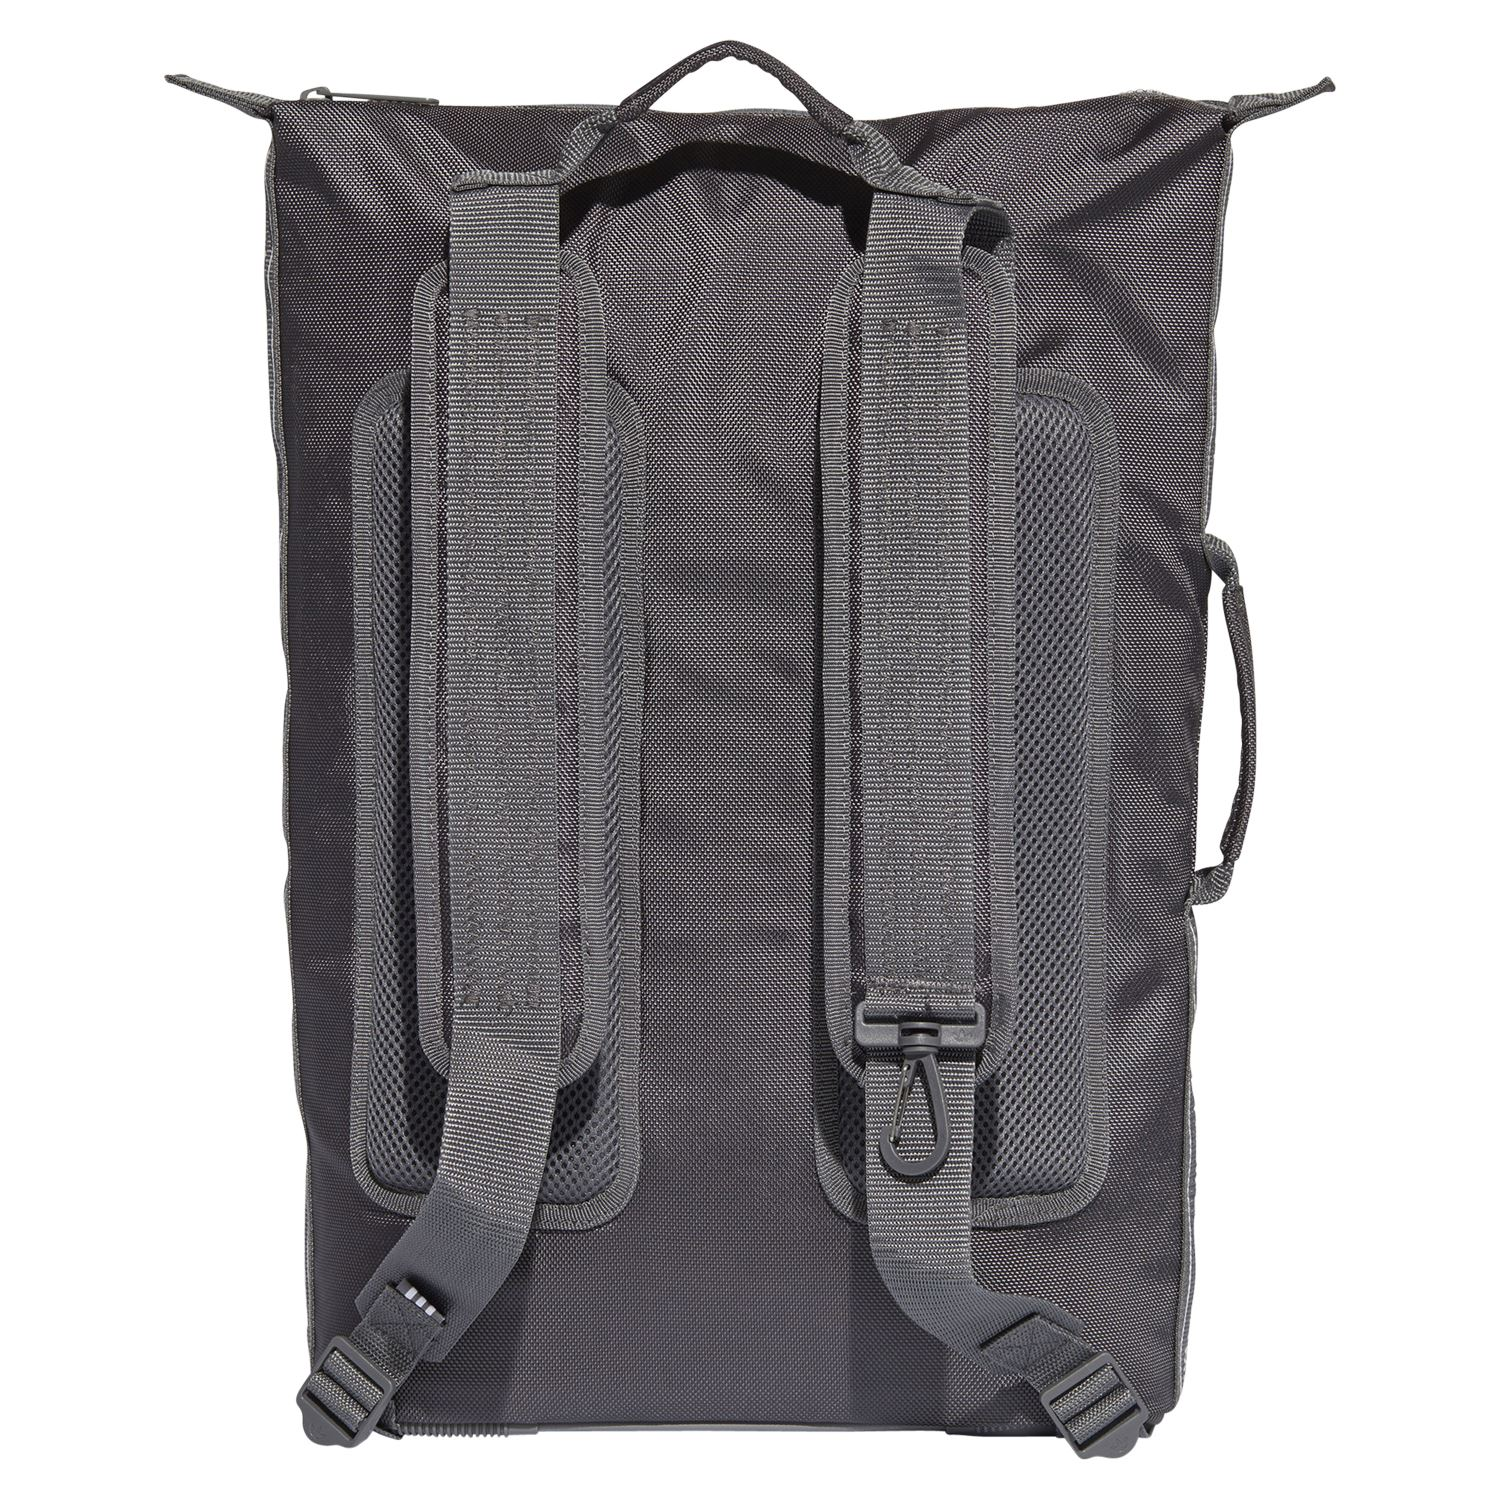 a0ad4792fcb2 Details about adidas ORIGINALS MEN S NMD DAY BACKPACK GREY COLLEGE BAG  UNIVERSITY LAPTOP NEW